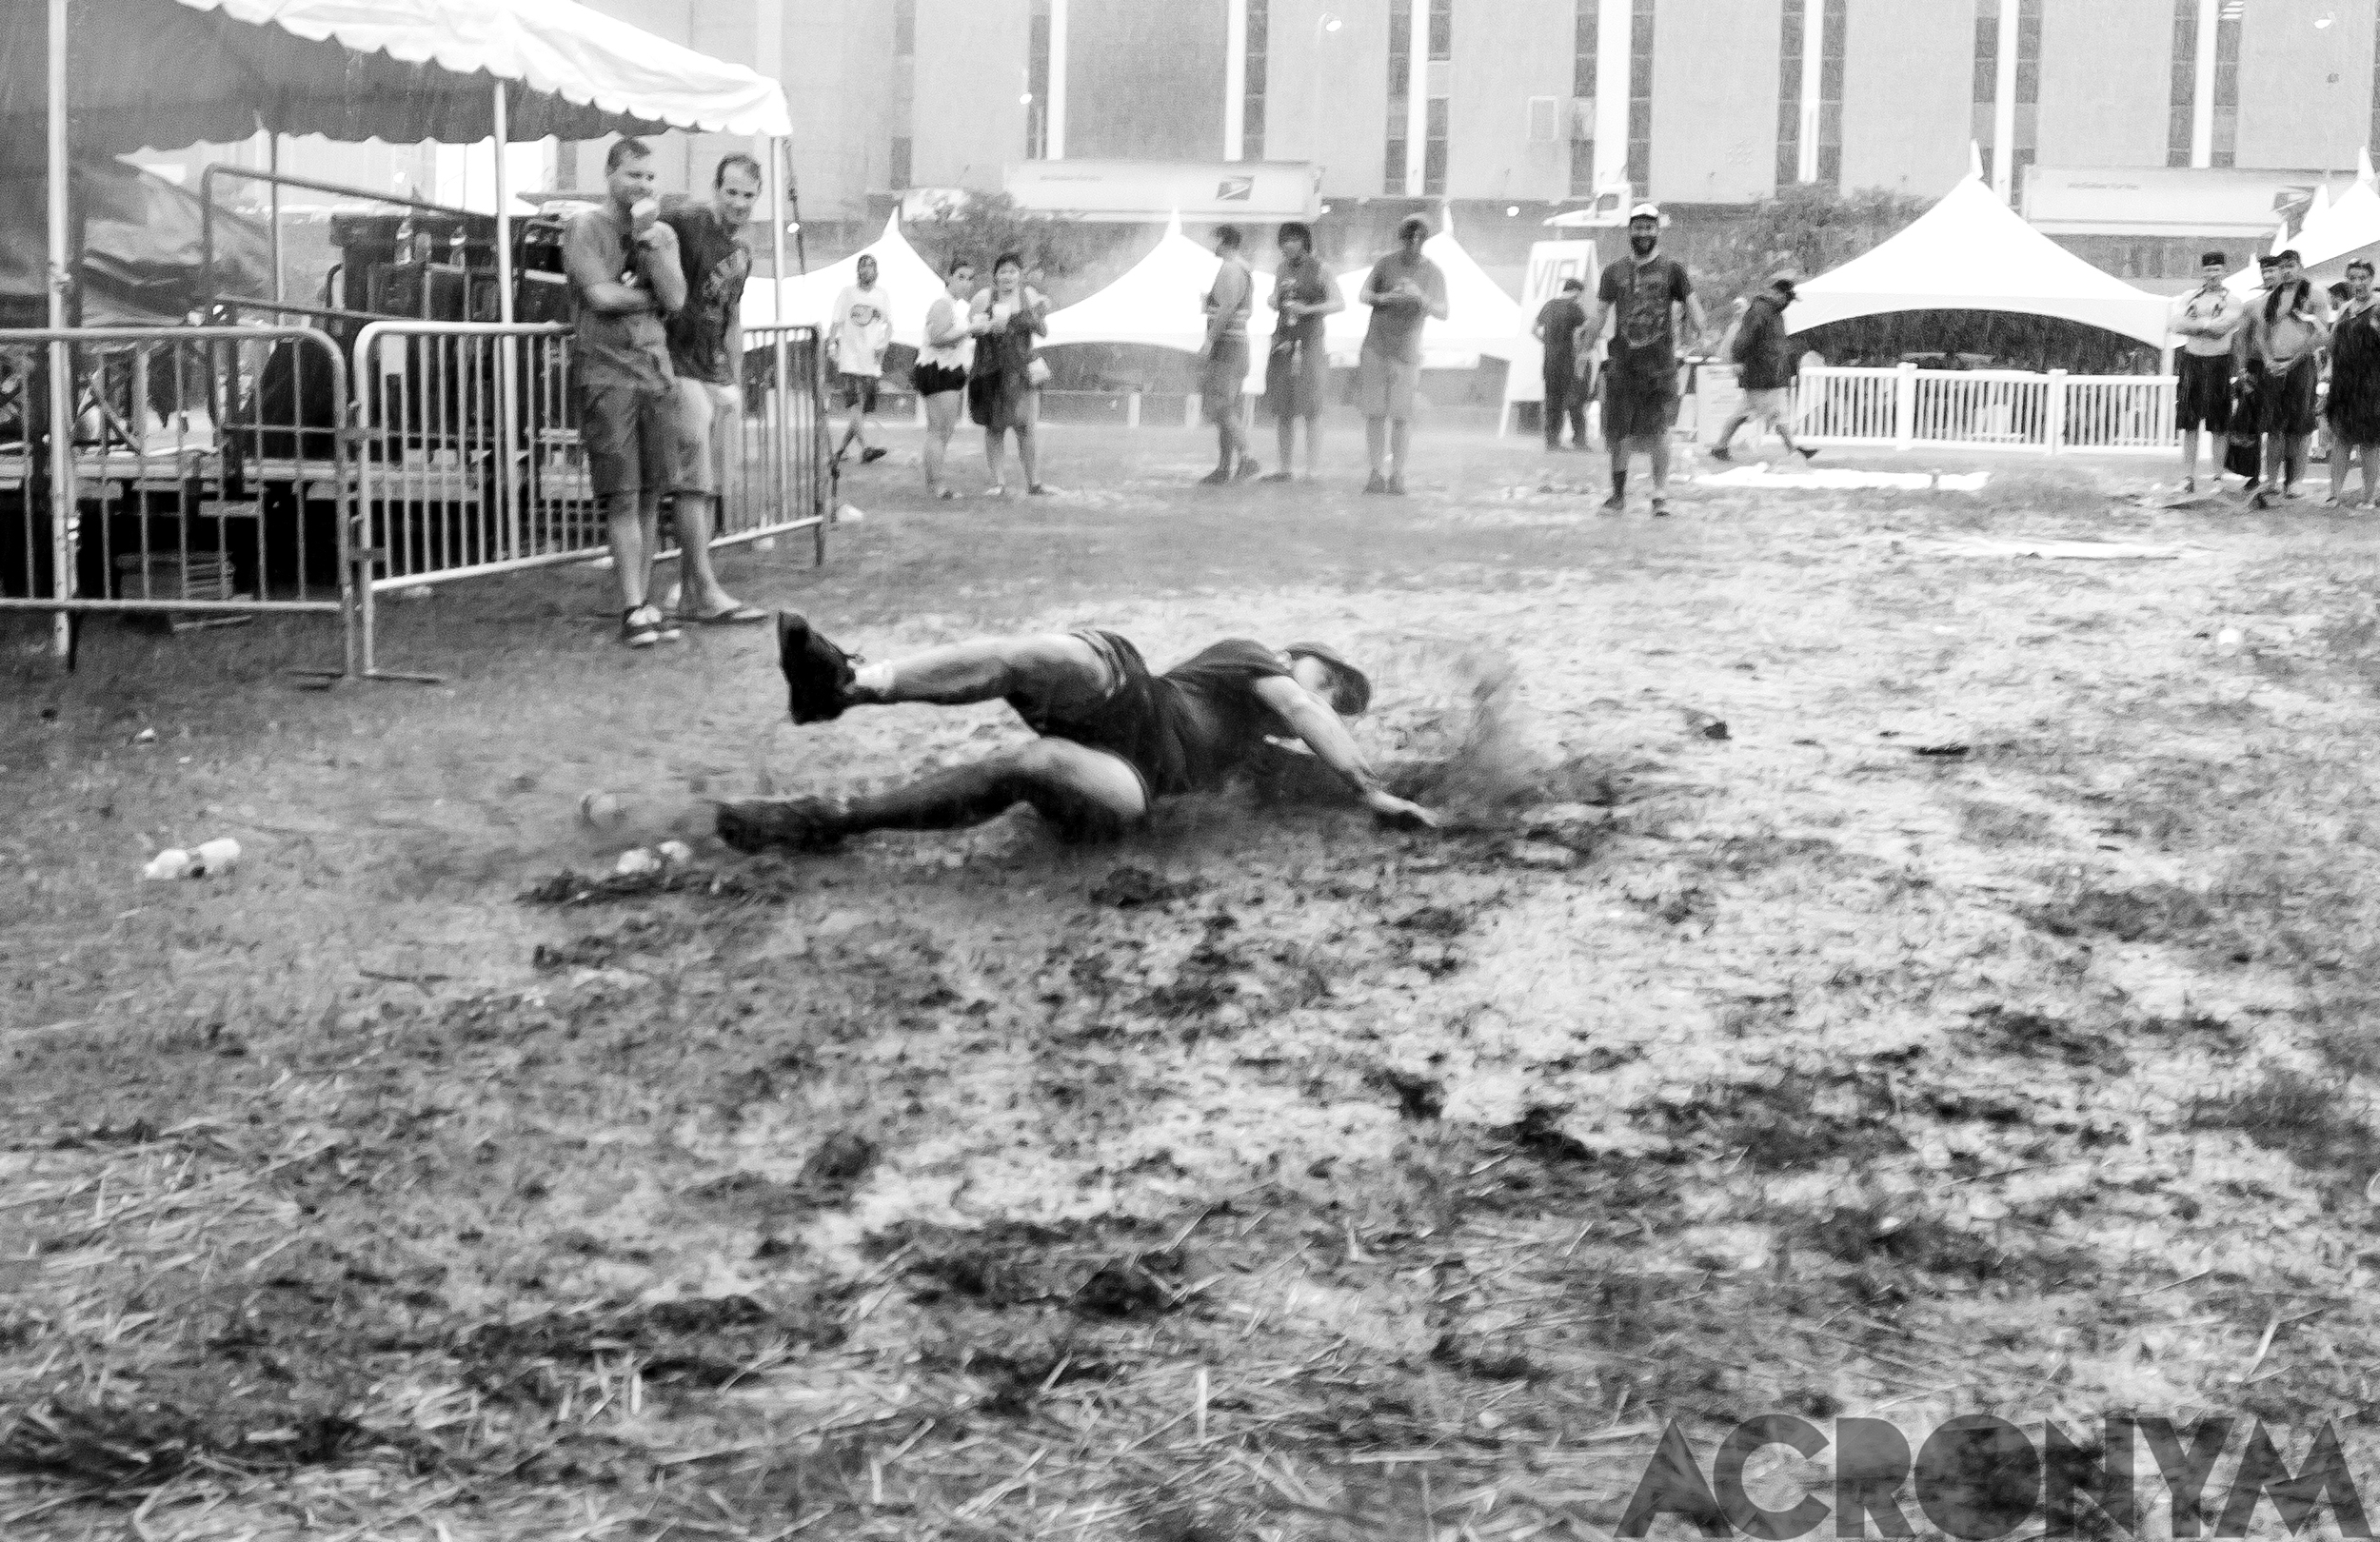 A MOPOP Patron Mud Sliding after Iron and Wine discontinued their set, pre-massive flooding. Photo: Acronym Creative Studio